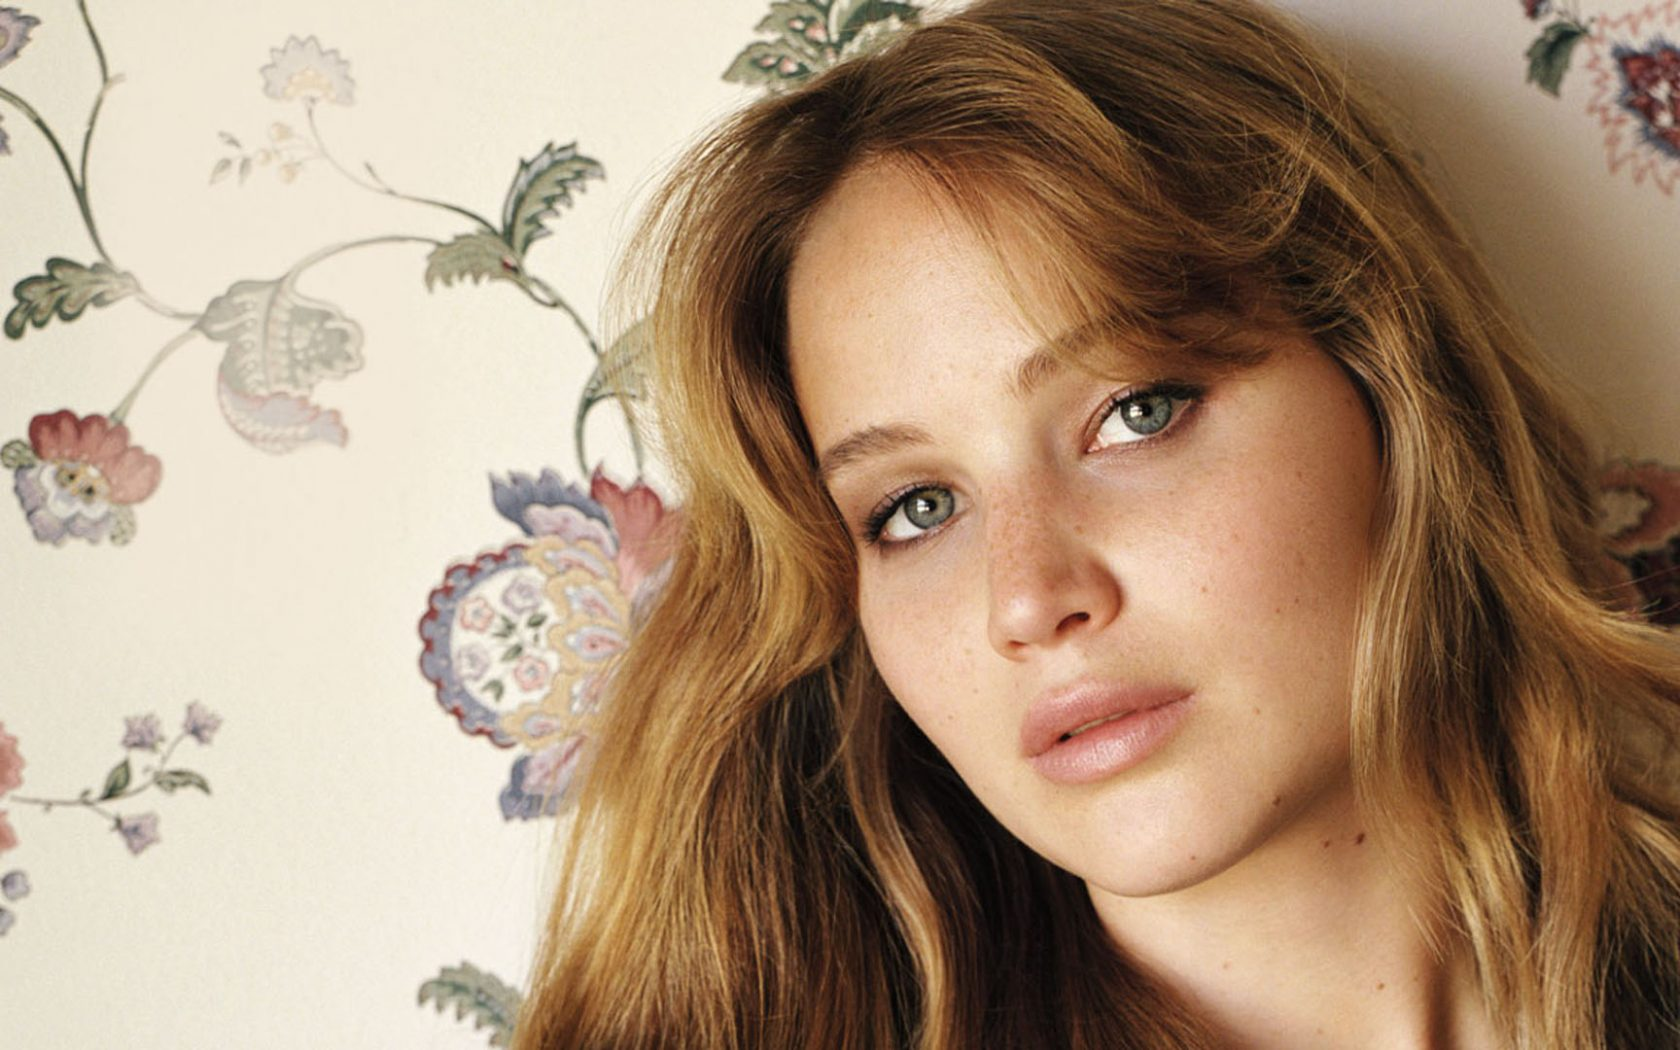 Actress jennifer lawrence wallpaper hd wallpaper background mobile vga 240x320 480x640 320x240 640x480 600x800 mobile wvga 240x400 480x800 400x240 smartphone 169 540x960 actress jennifer lawrence voltagebd Image collections